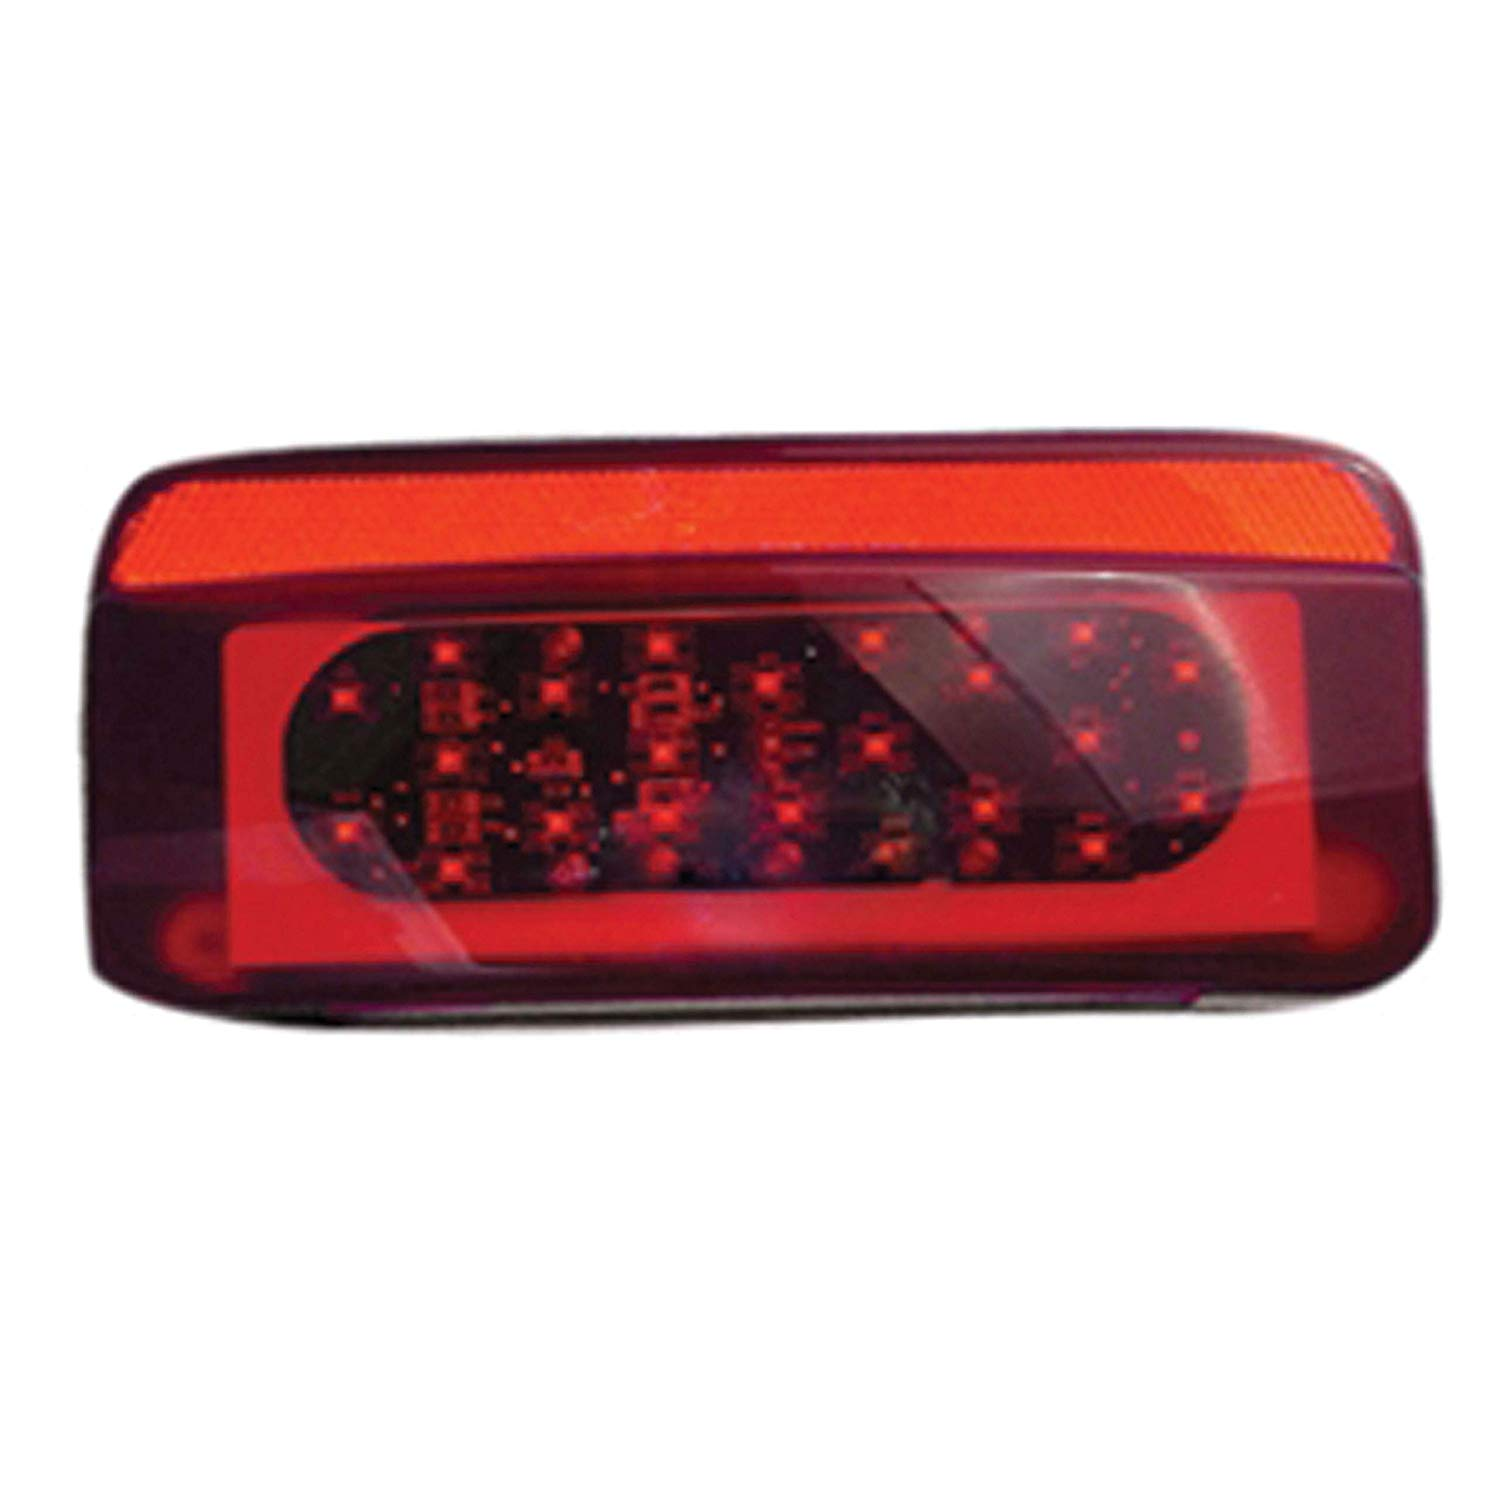 Fasteners Unlimited 003-81M1 LED Surface Mount Tail Light